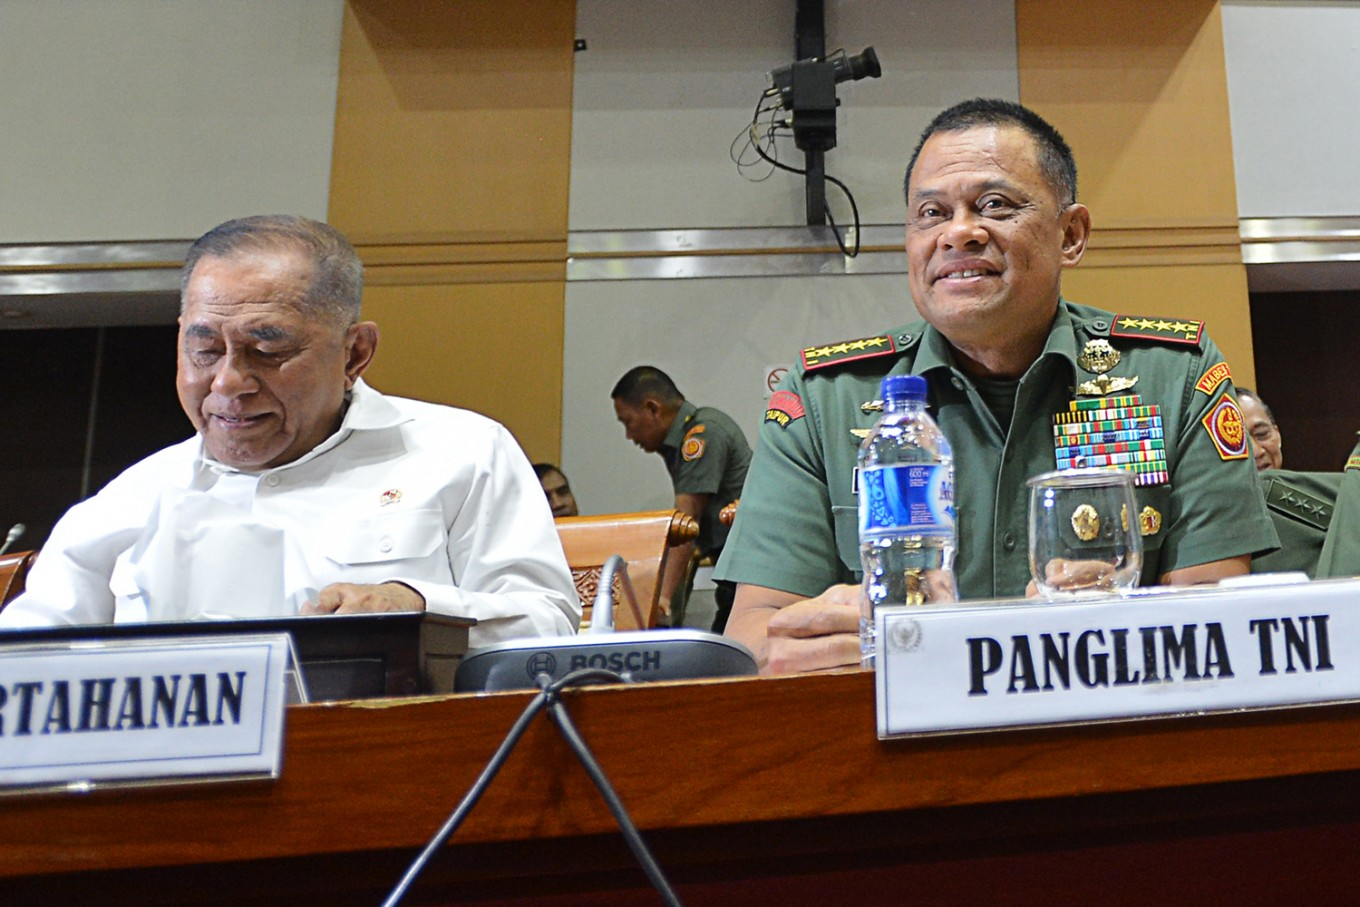 New flight booked for Gatot but he chooses not to fly: US